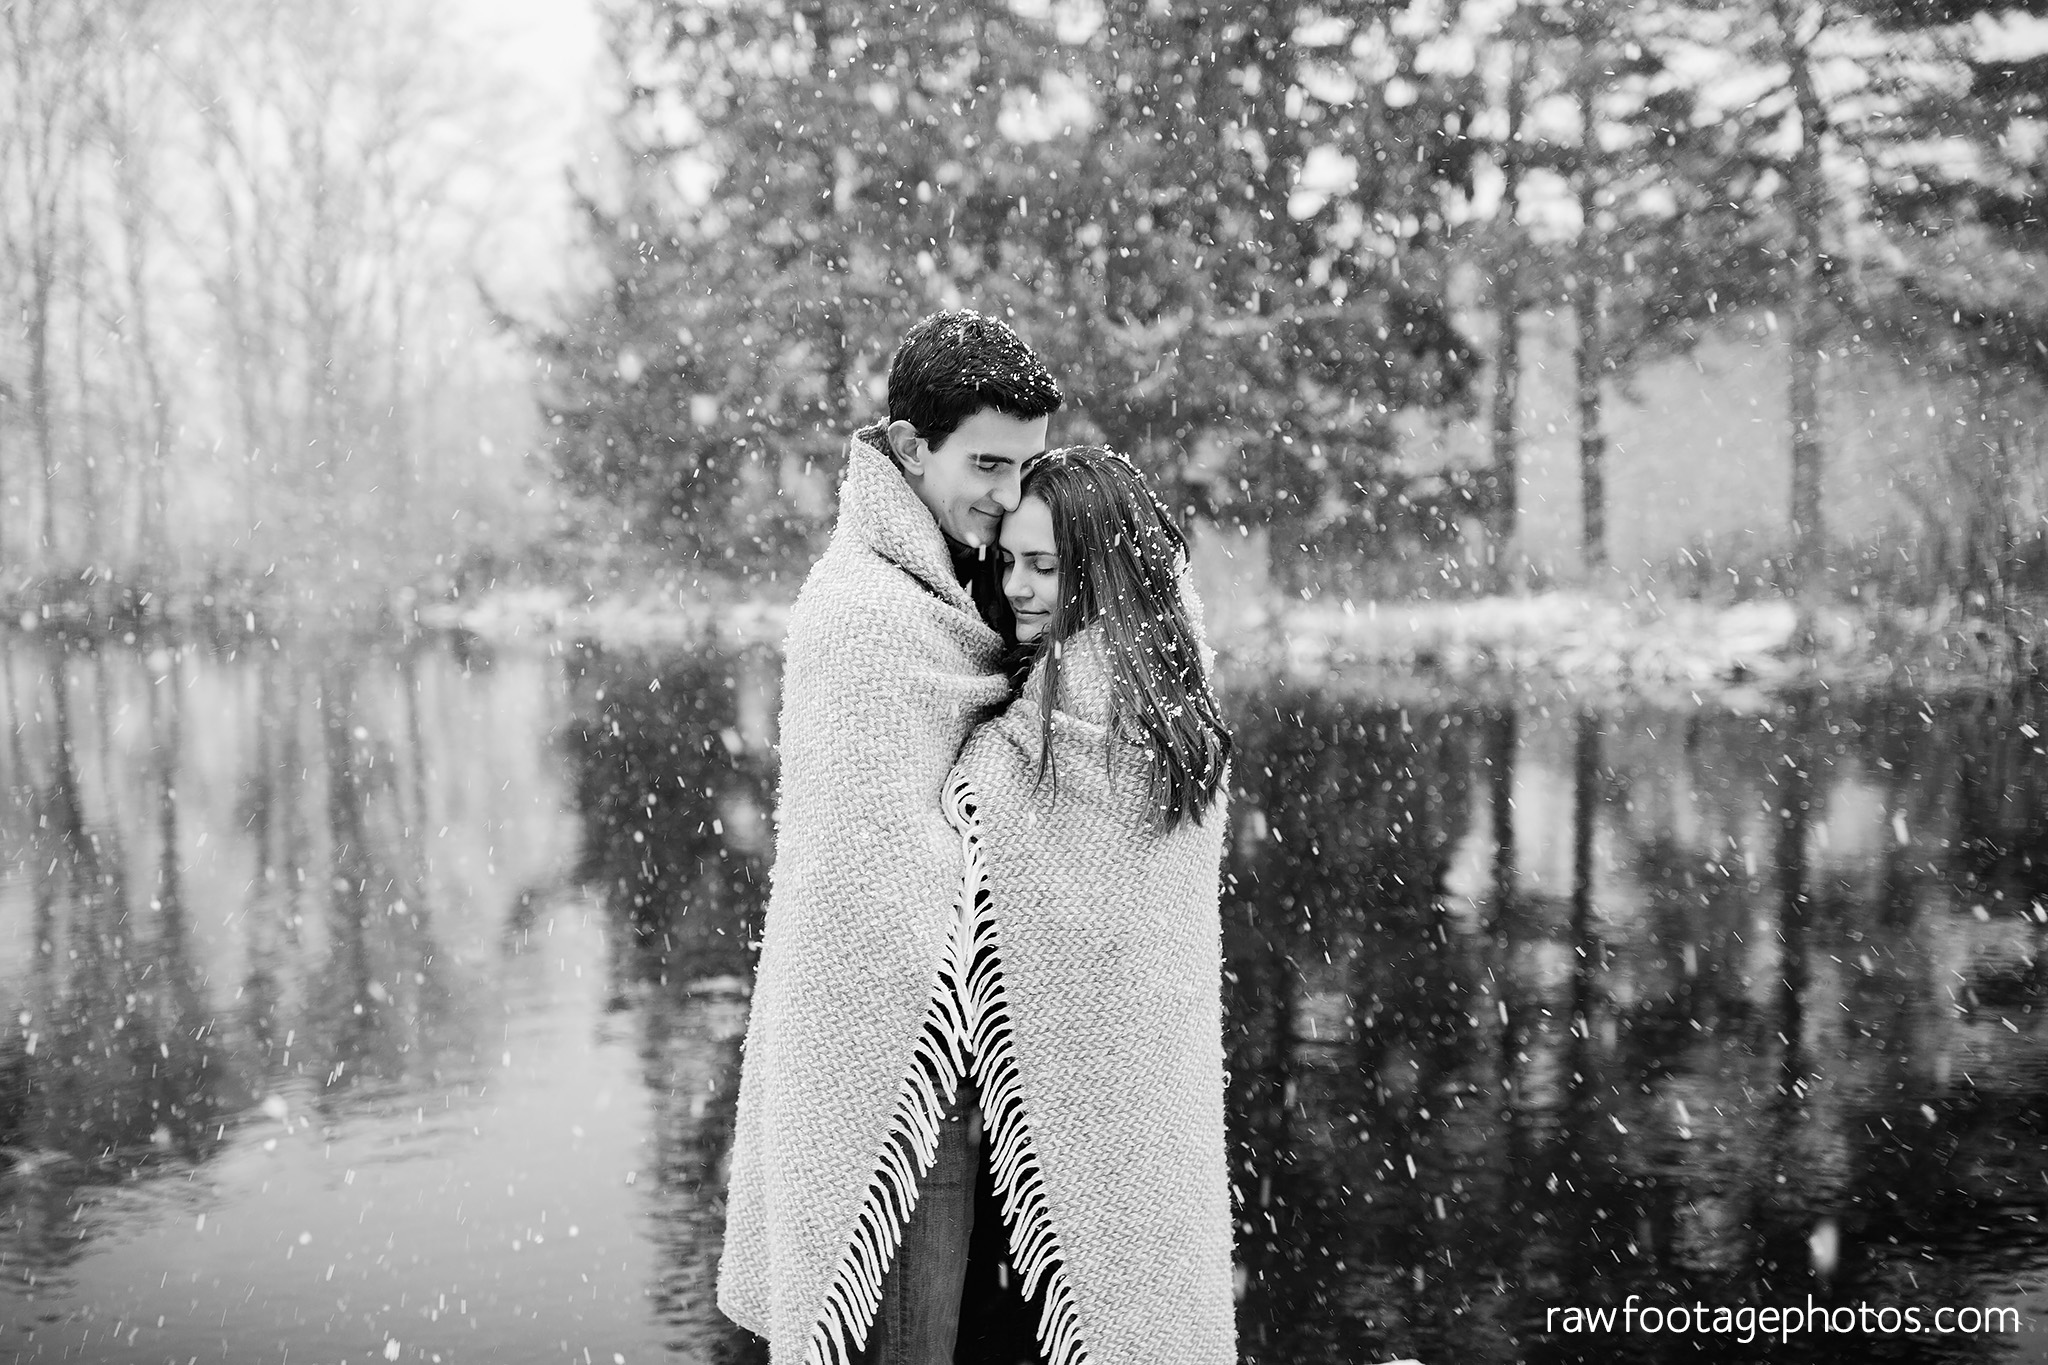 london_ontario_wedding_photographer-snowy_engagement_session-winter-barn-farm-snowflakes-blizzard-raw_footage_photography012.jpg